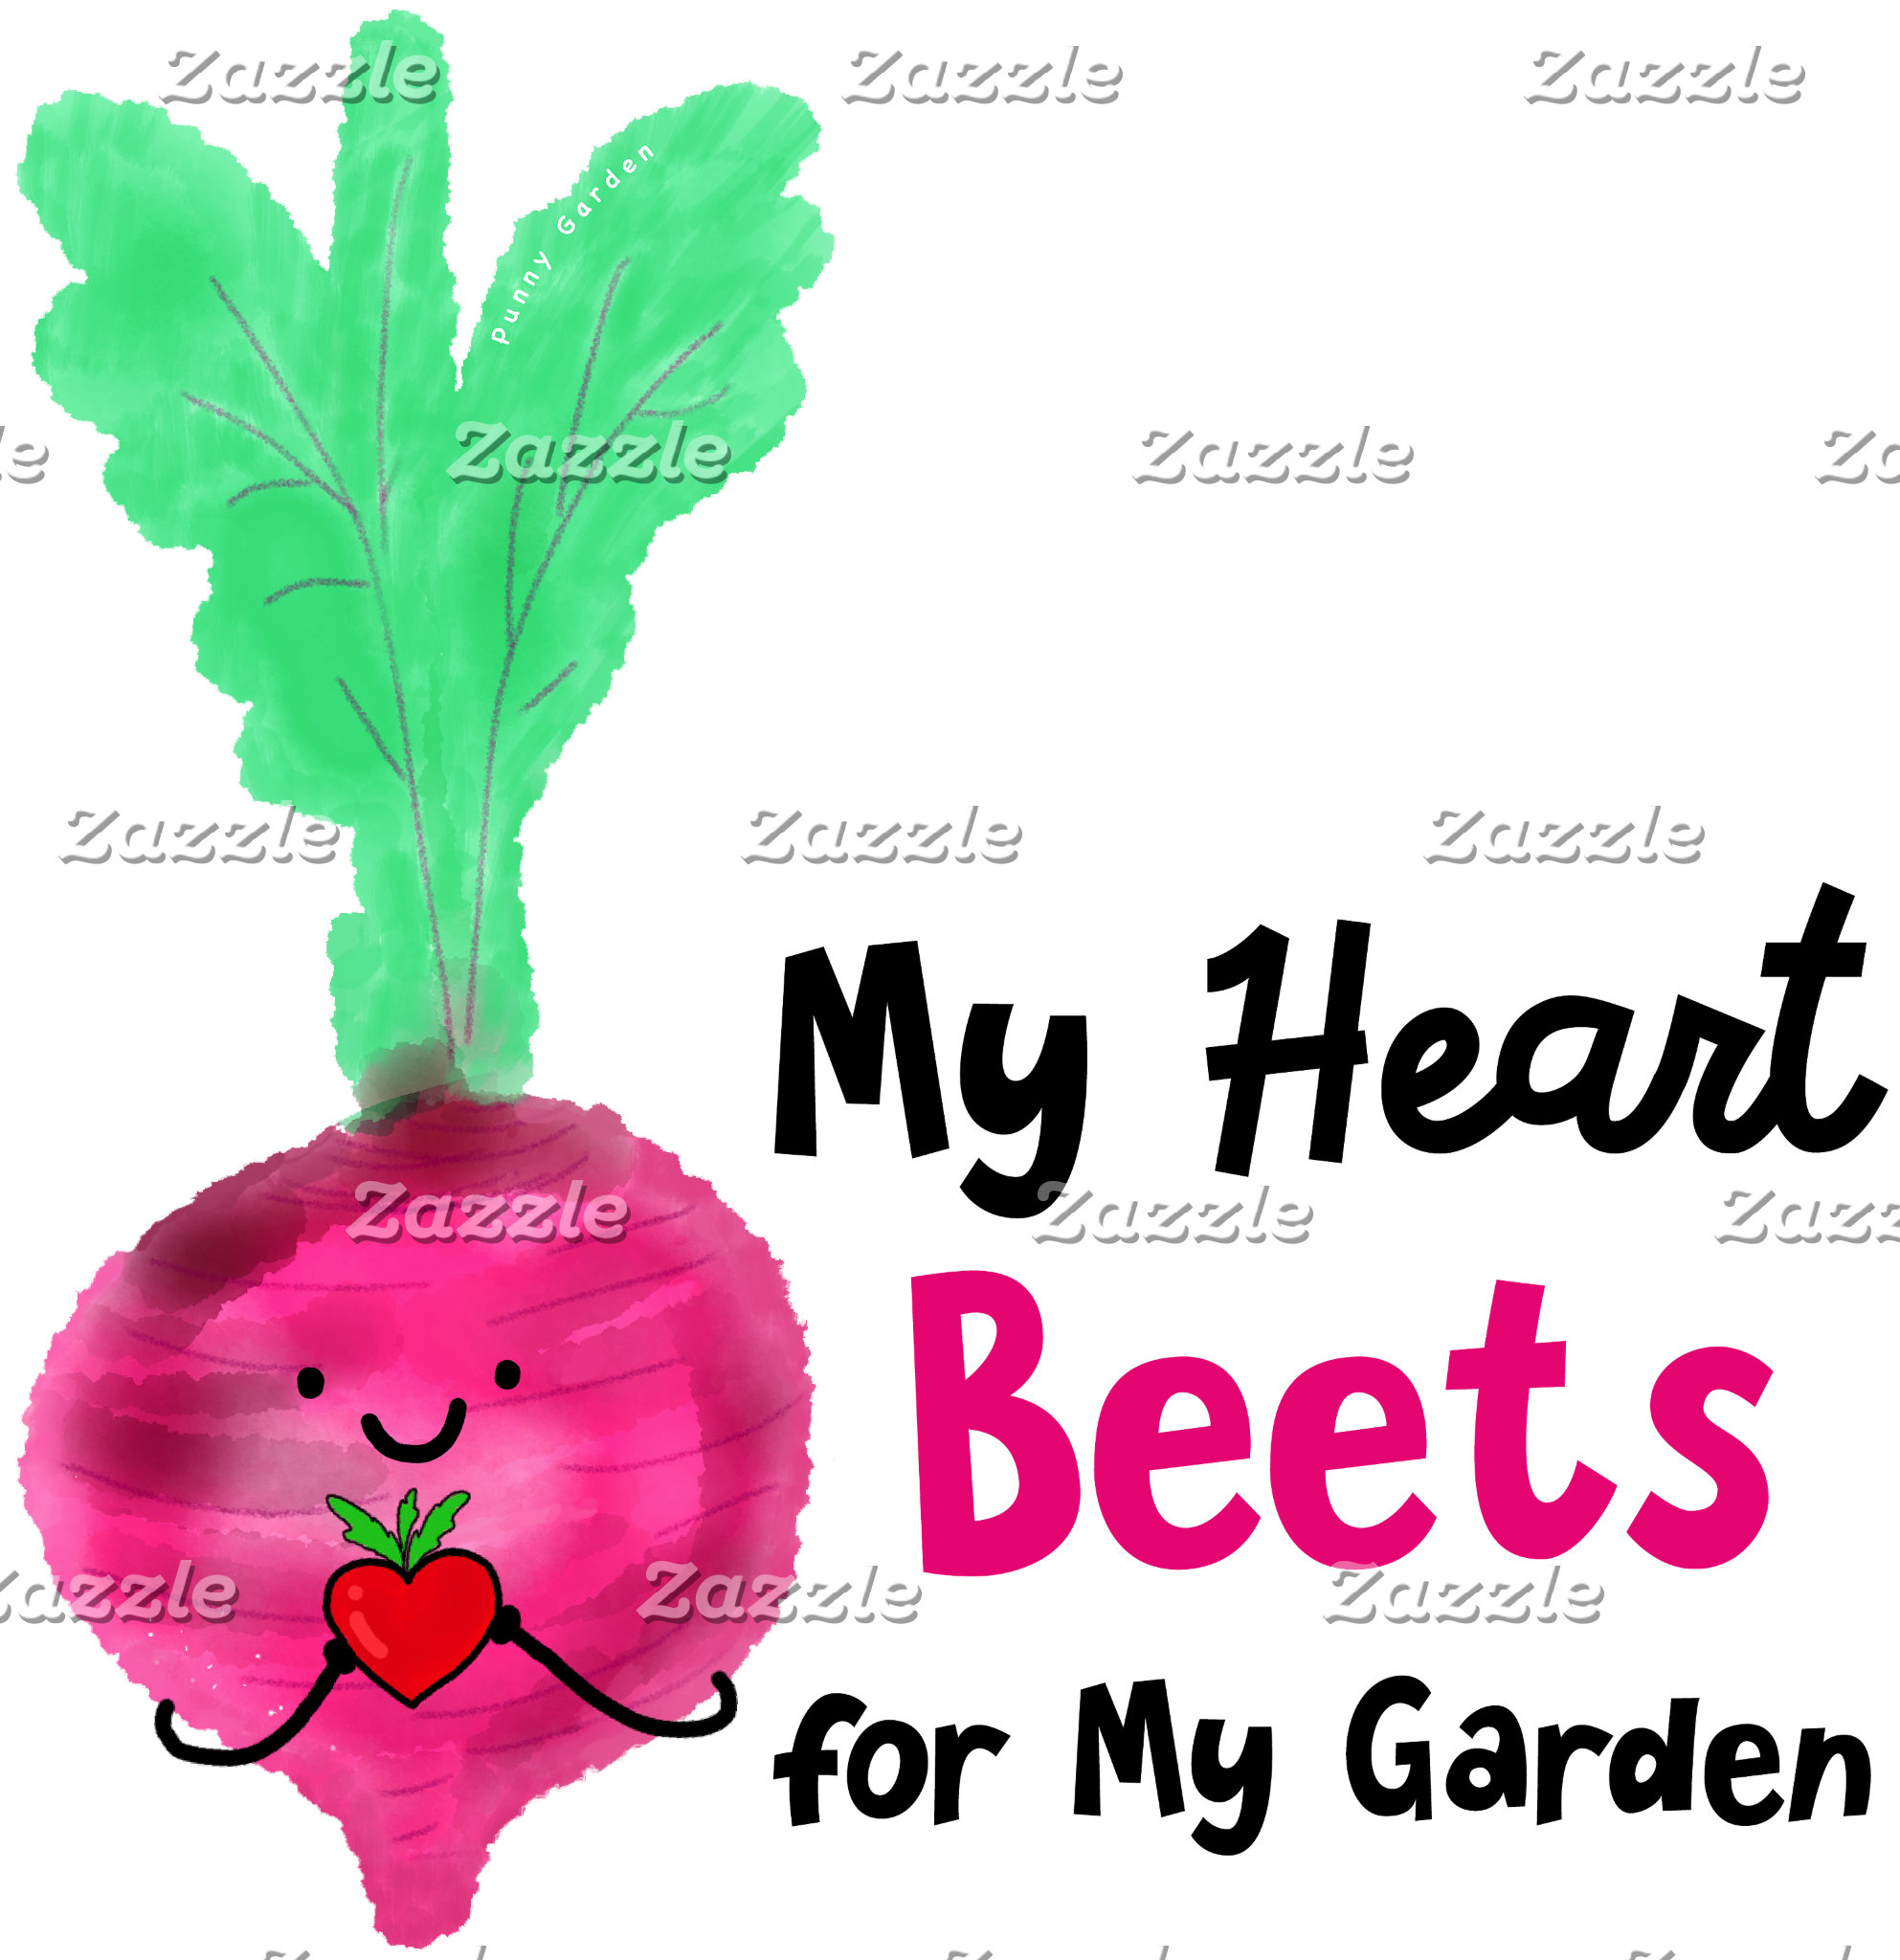 My Heart Beets for my Garden